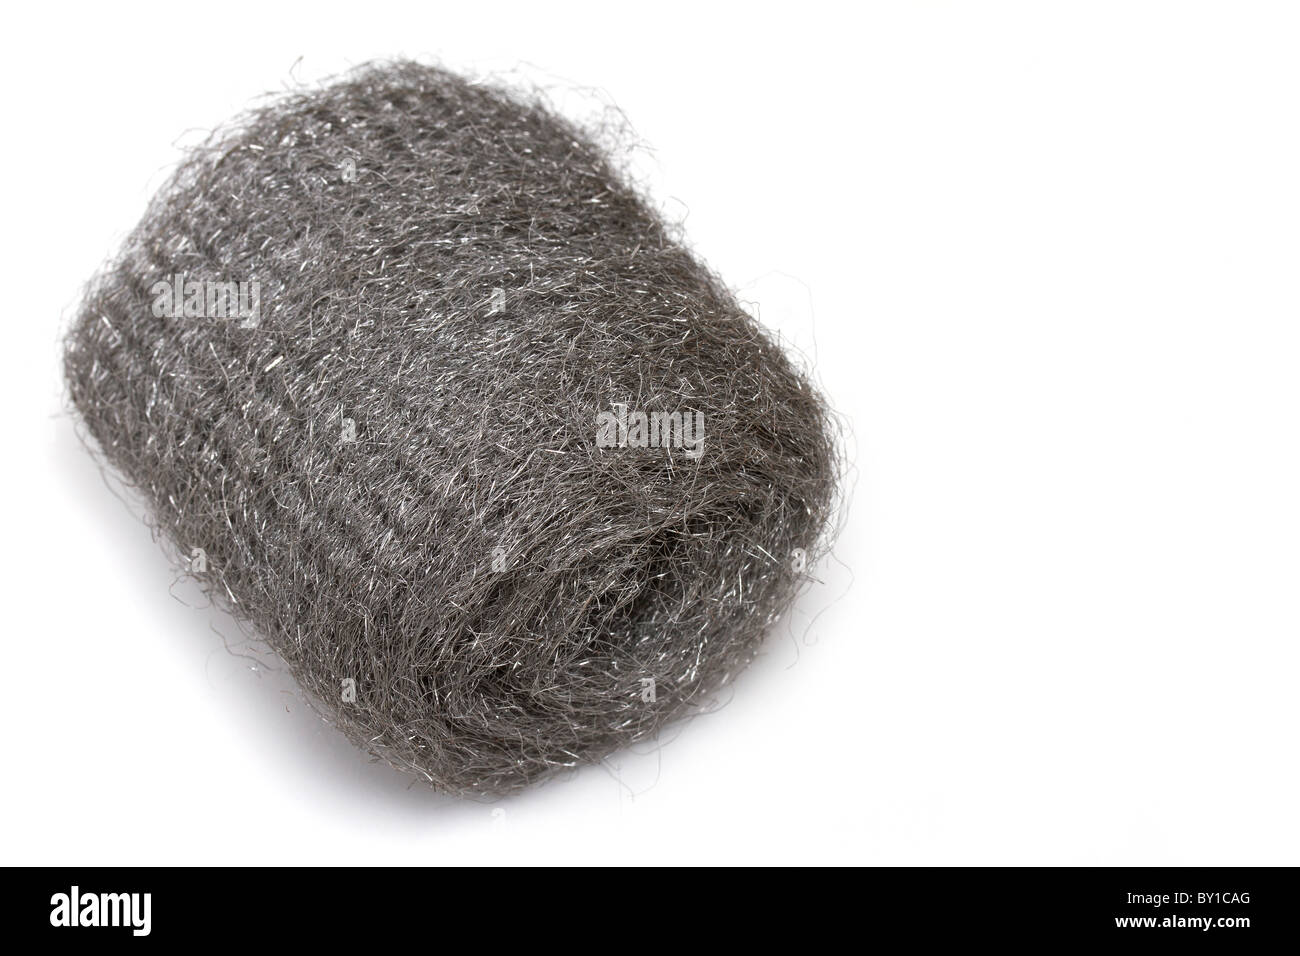 Steel Wire Wool Stock Photos & Steel Wire Wool Stock Images - Alamy